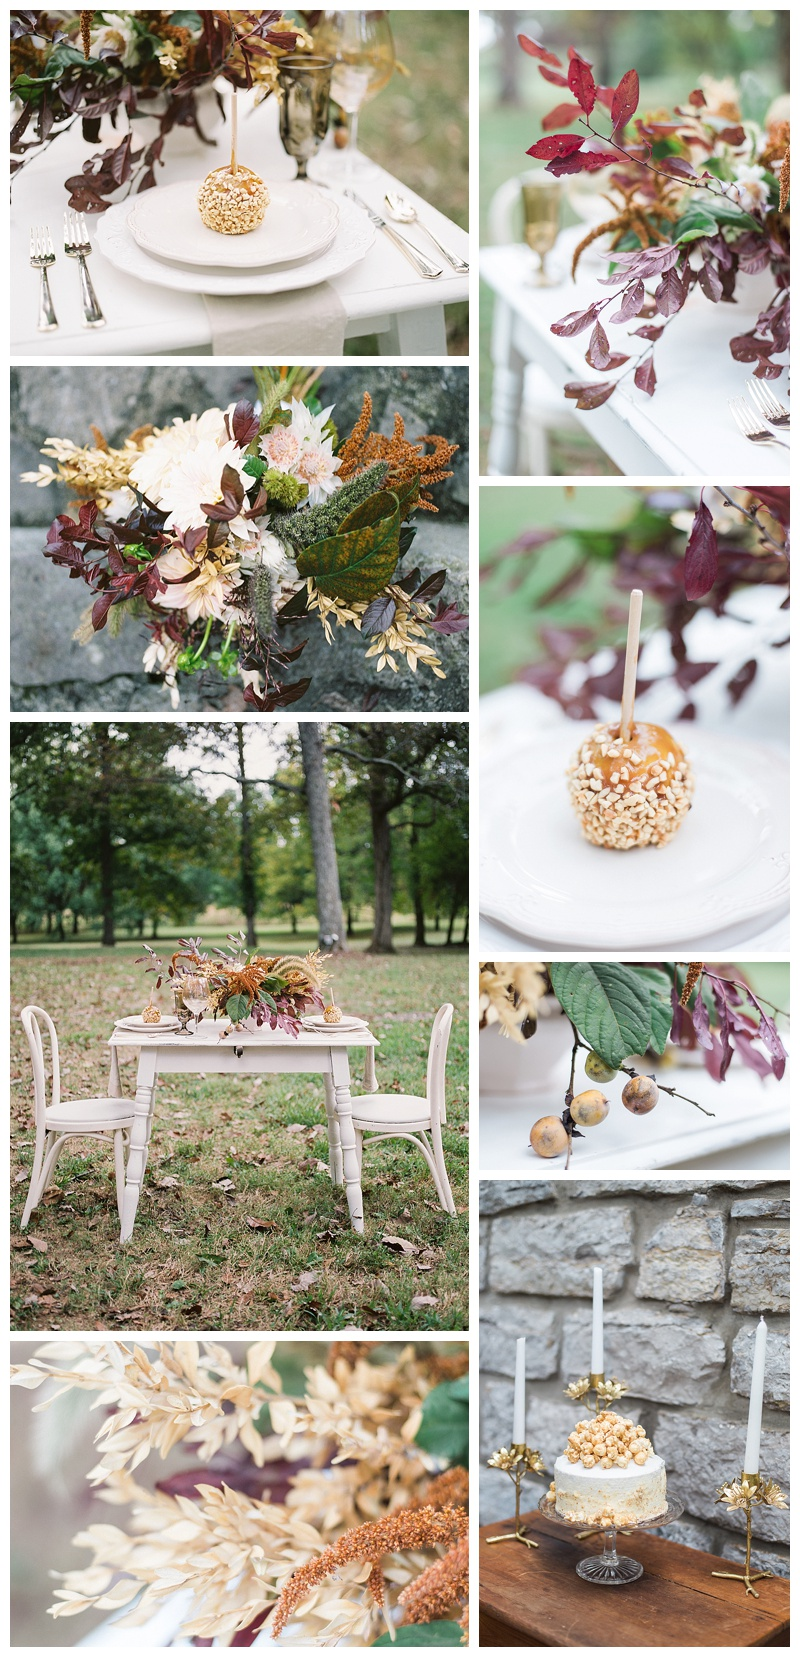 Fall-themed Wedding Caramel apples and Caramel popcorn cake